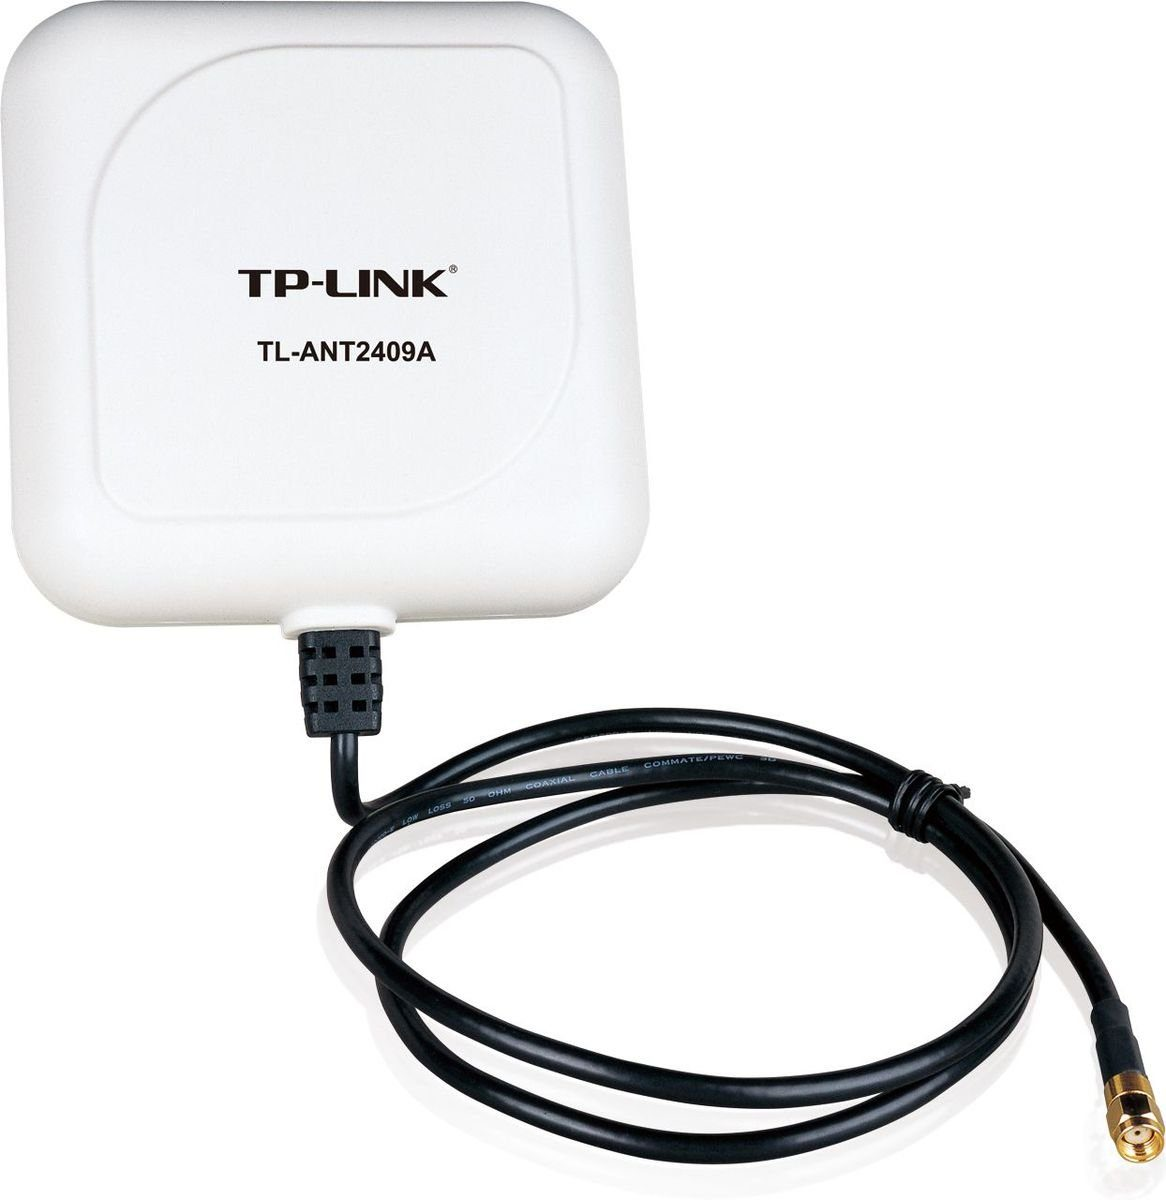 TP-Link WLAN Antenne »TL-ANT2409A WLAN 2,4GHz 9dBi Richtstrahlantenne«